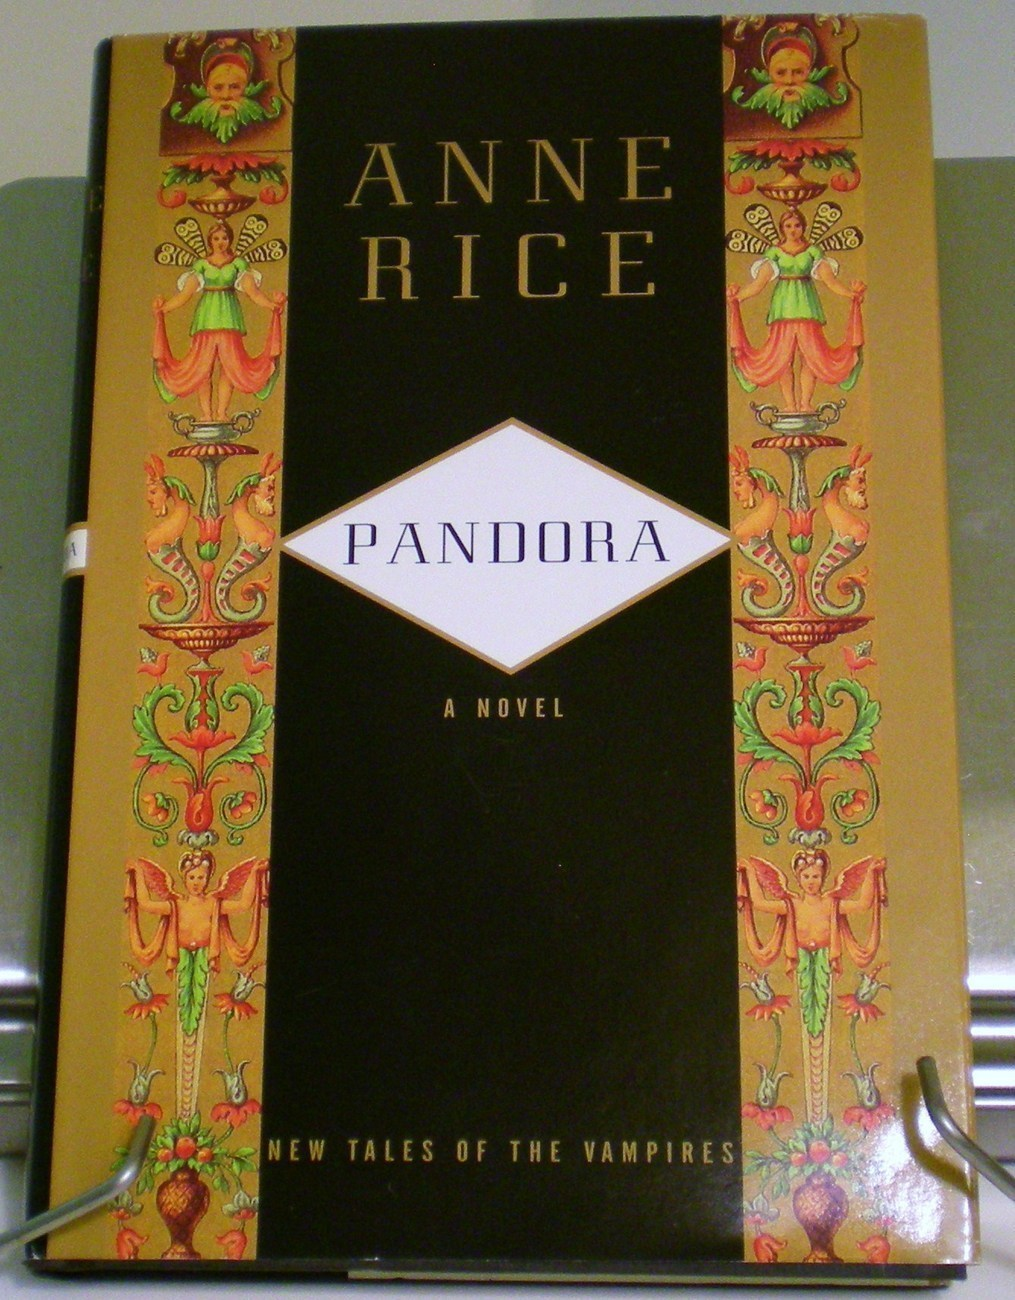 Pandora: New Tales of the Vampires by Anne Rice 1998